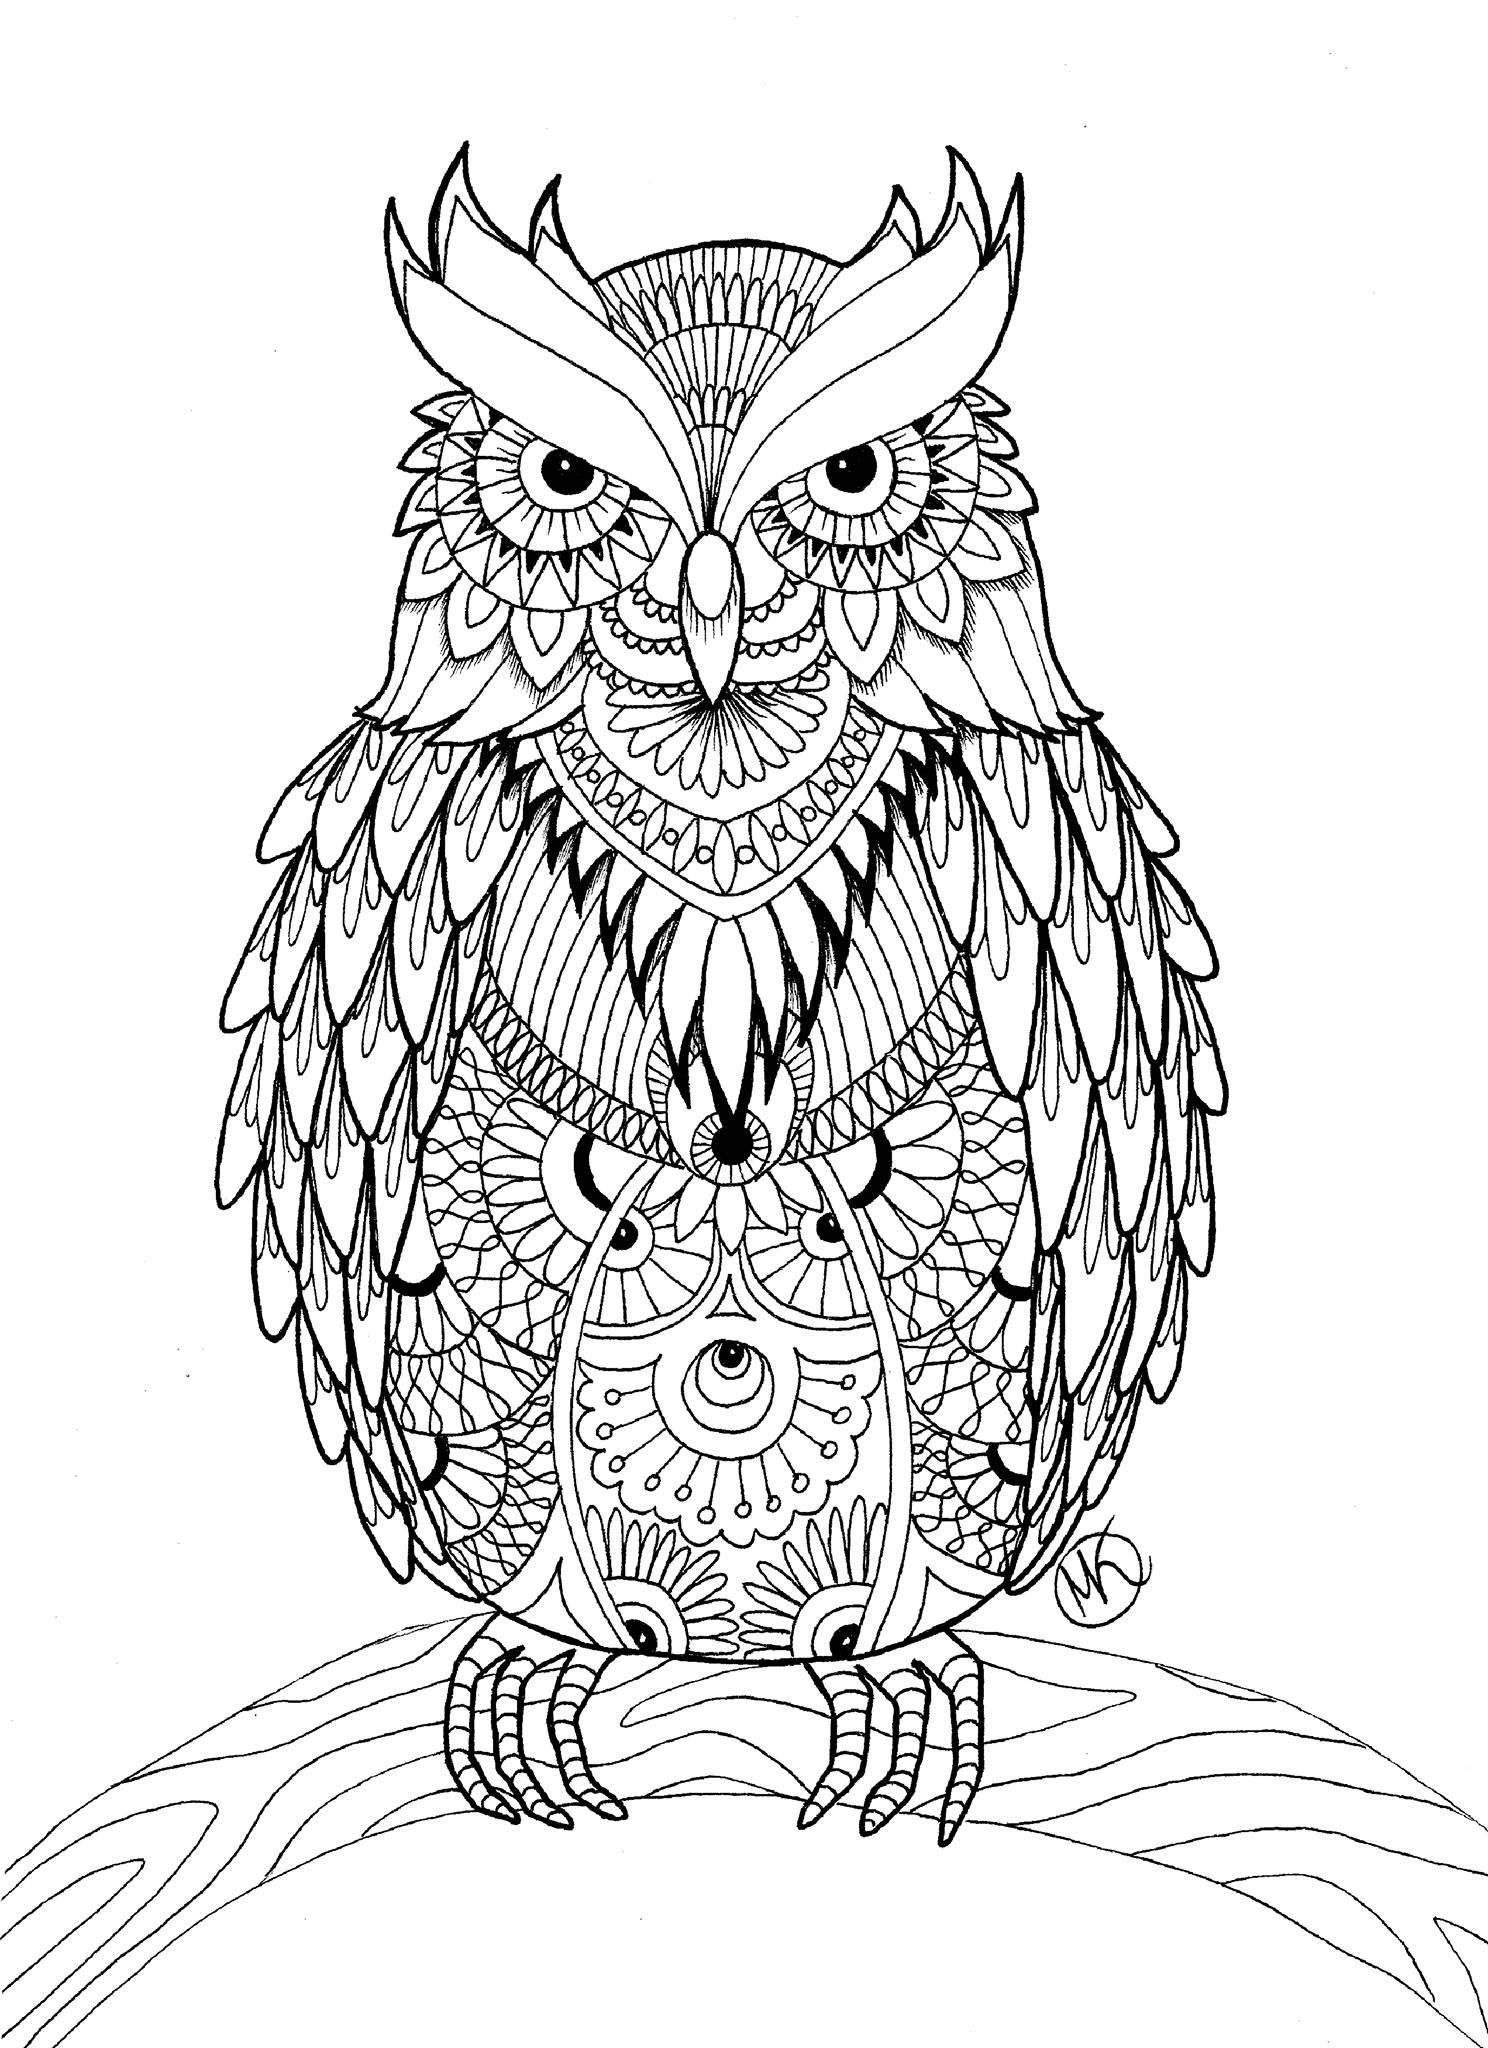 Artist Midzy Kreskami Coloring Pages For AdultsFree PagesColoring BooksMandala DoodleOwl